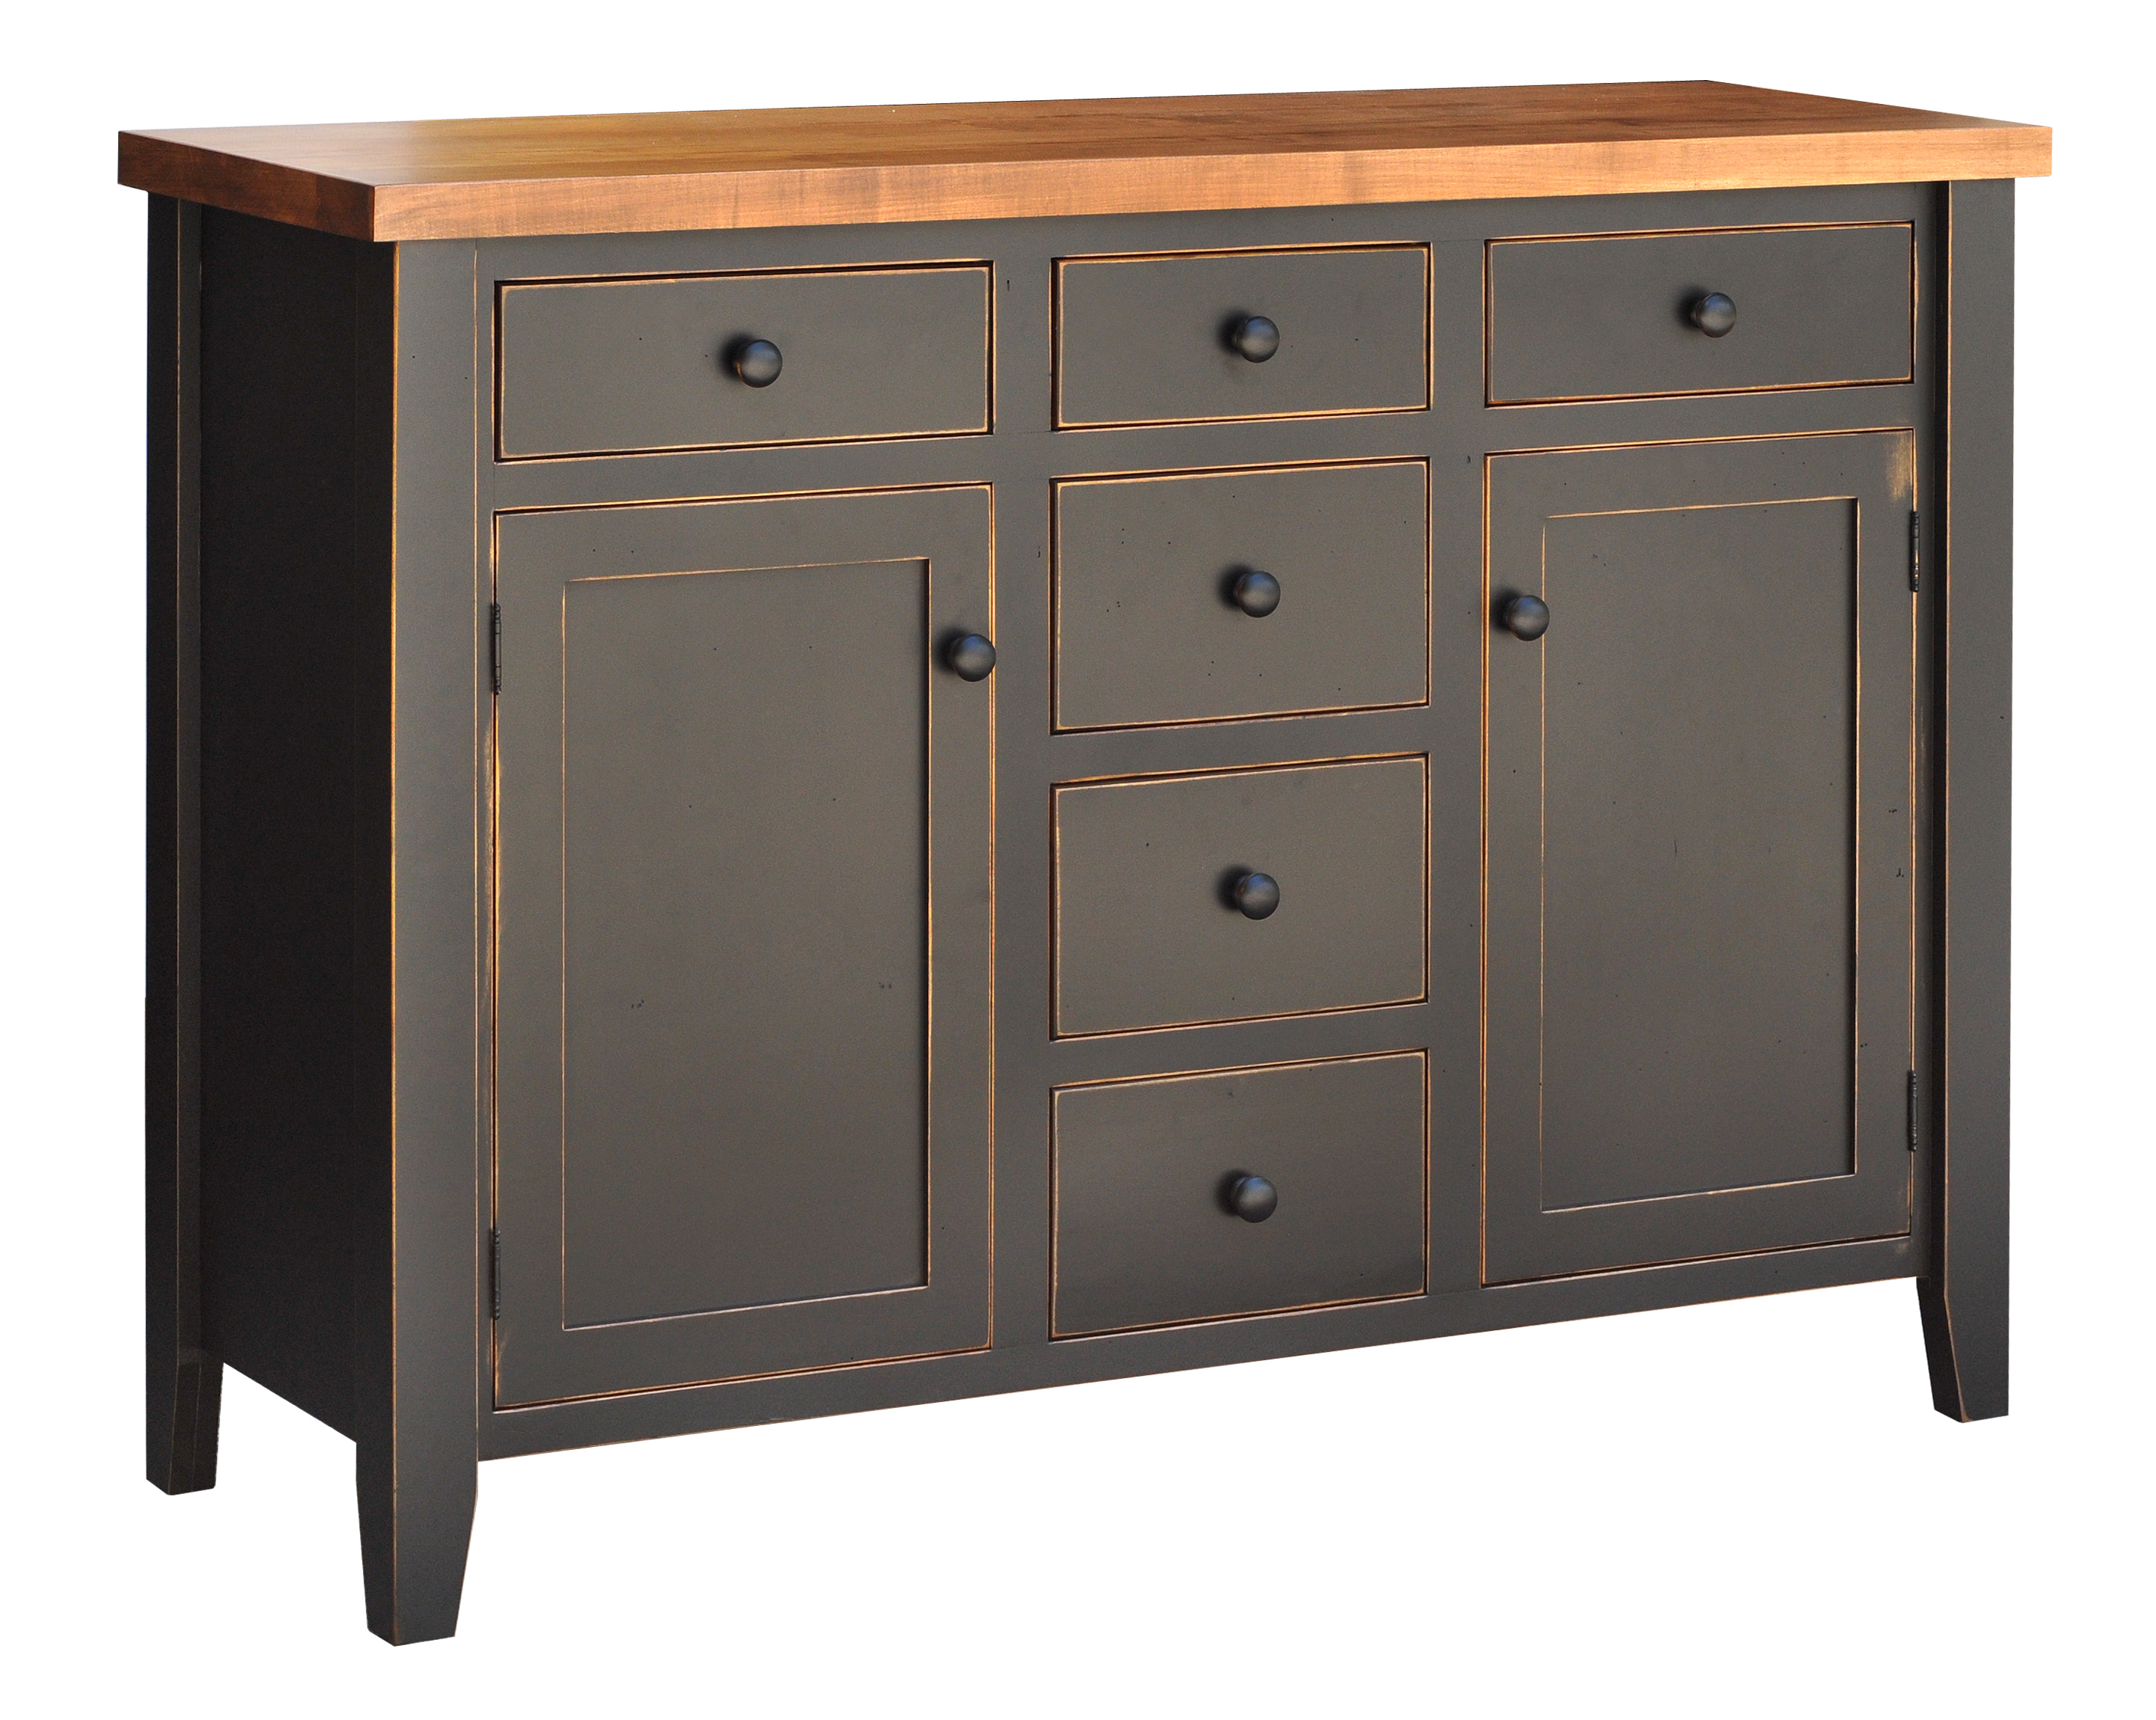 Ruff Sawn Farmhouse Sideboard FSSB4460